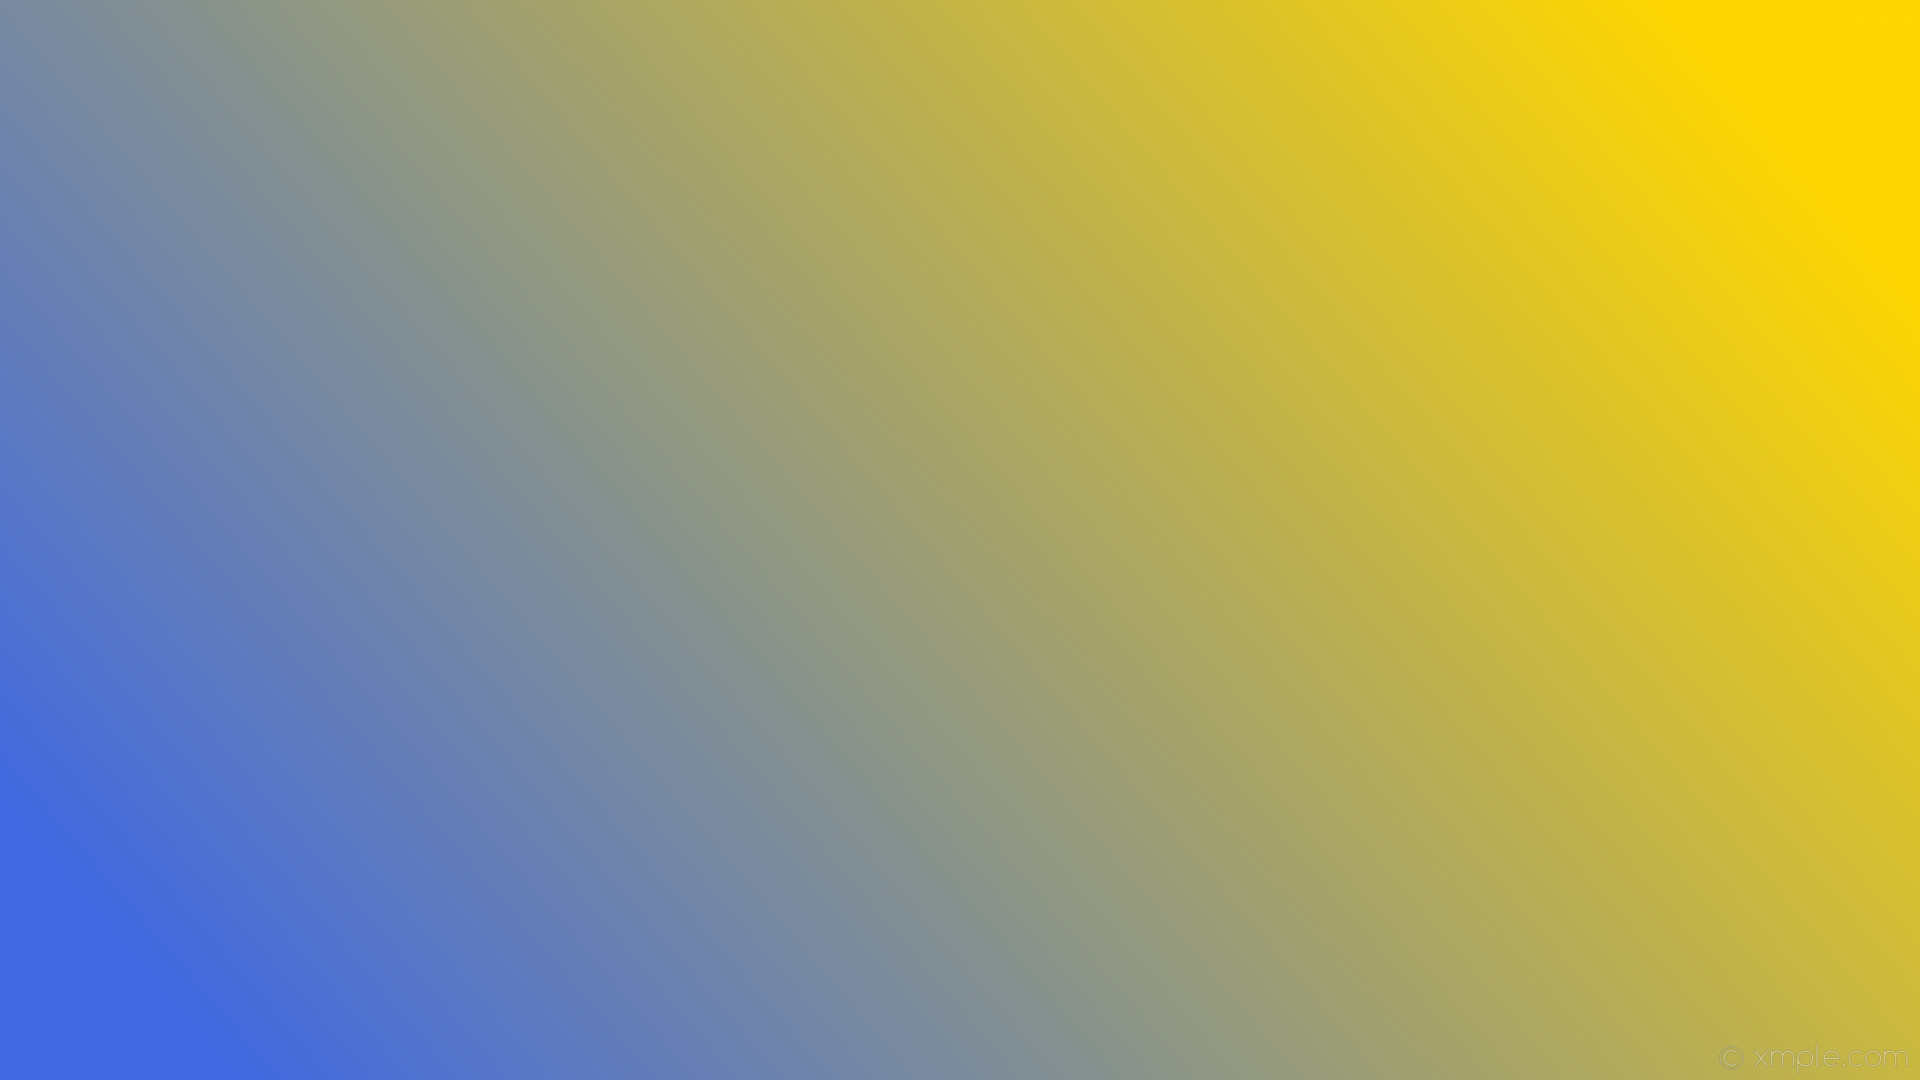 Royal Blue And Gold Wallpaper 48 Images